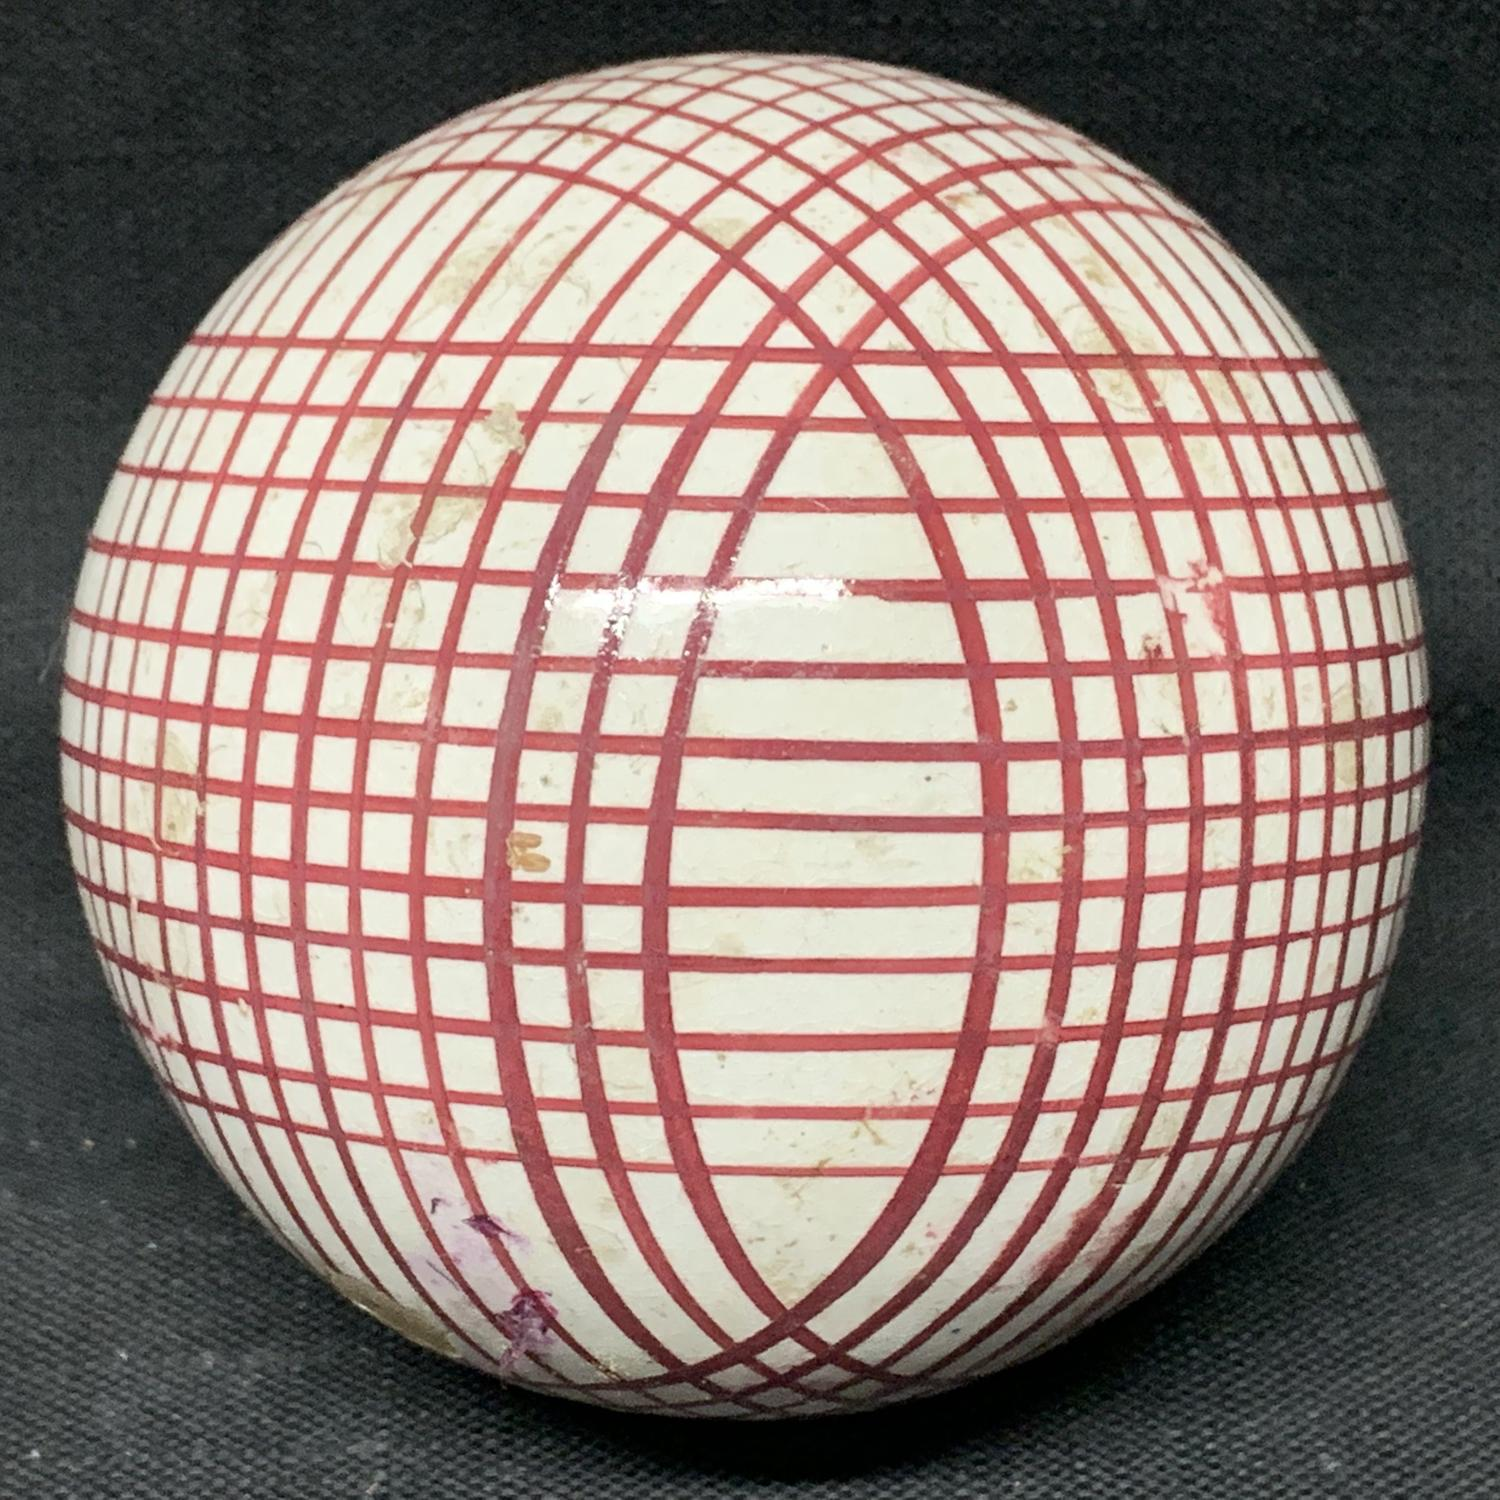 Victorian Ceramic Red Striped Scottish Carpet Ball 1860